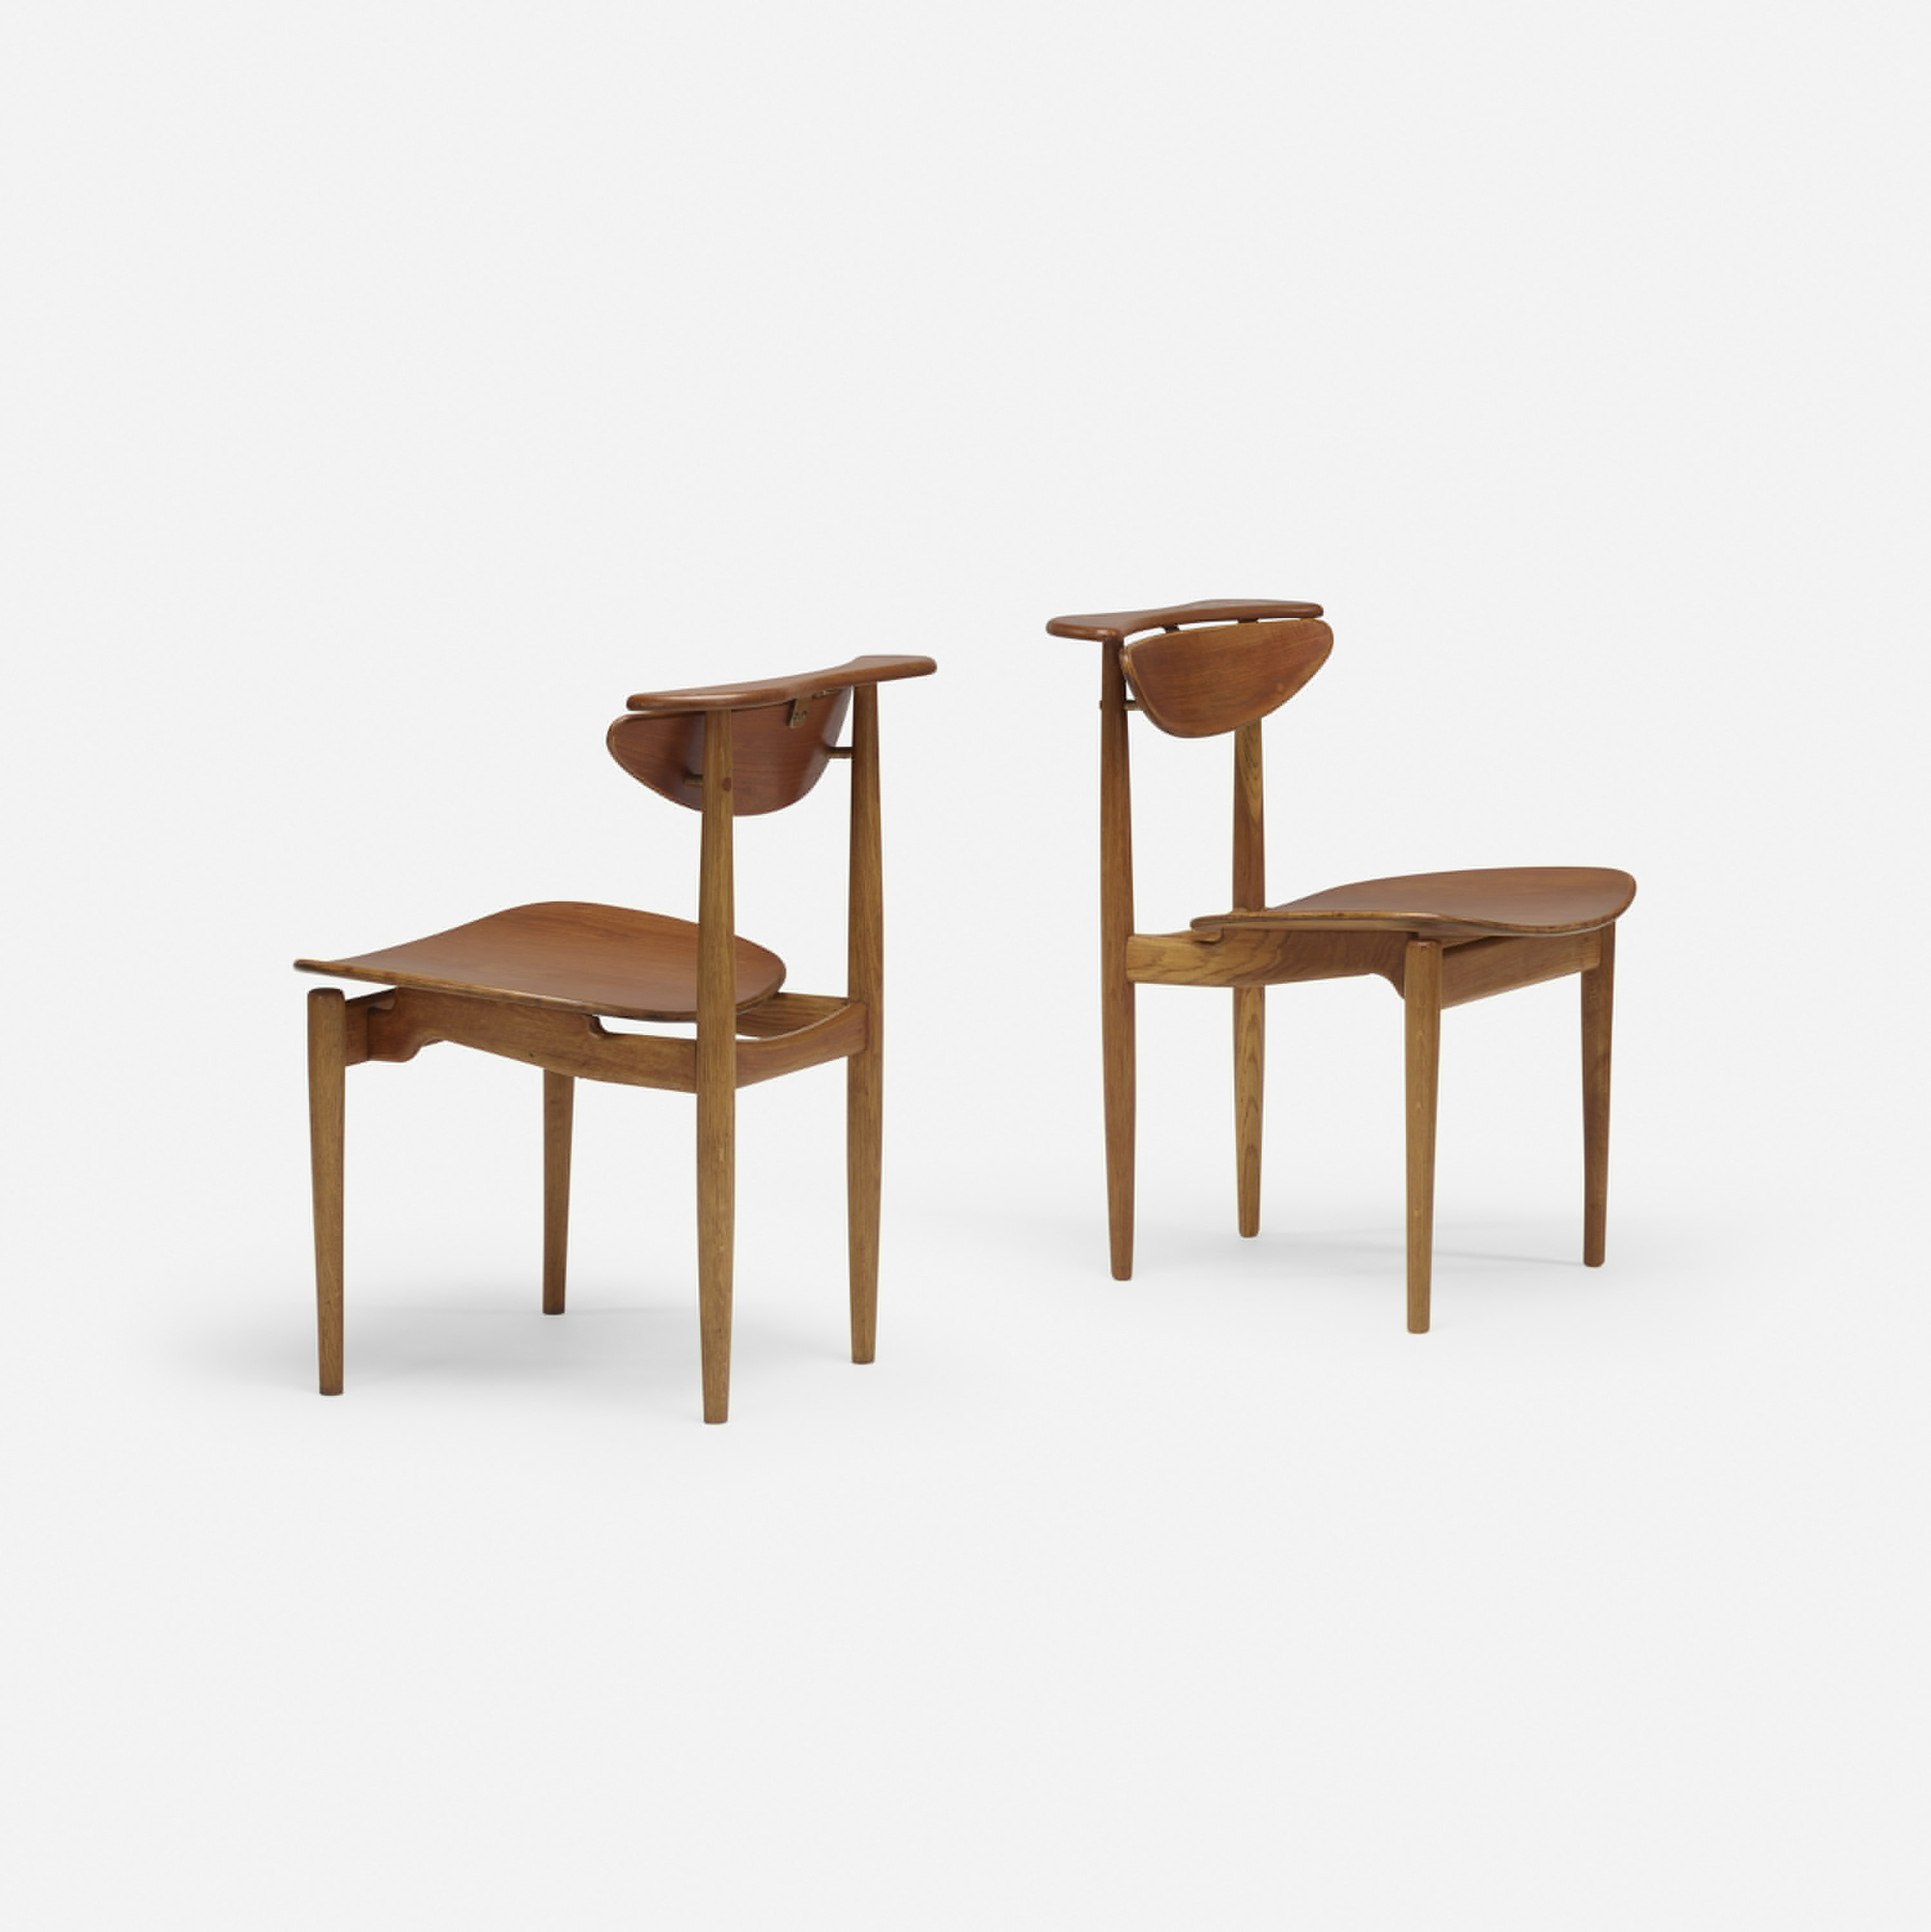 115: Finn Juhl / dining chairs, pair (1 of 4)